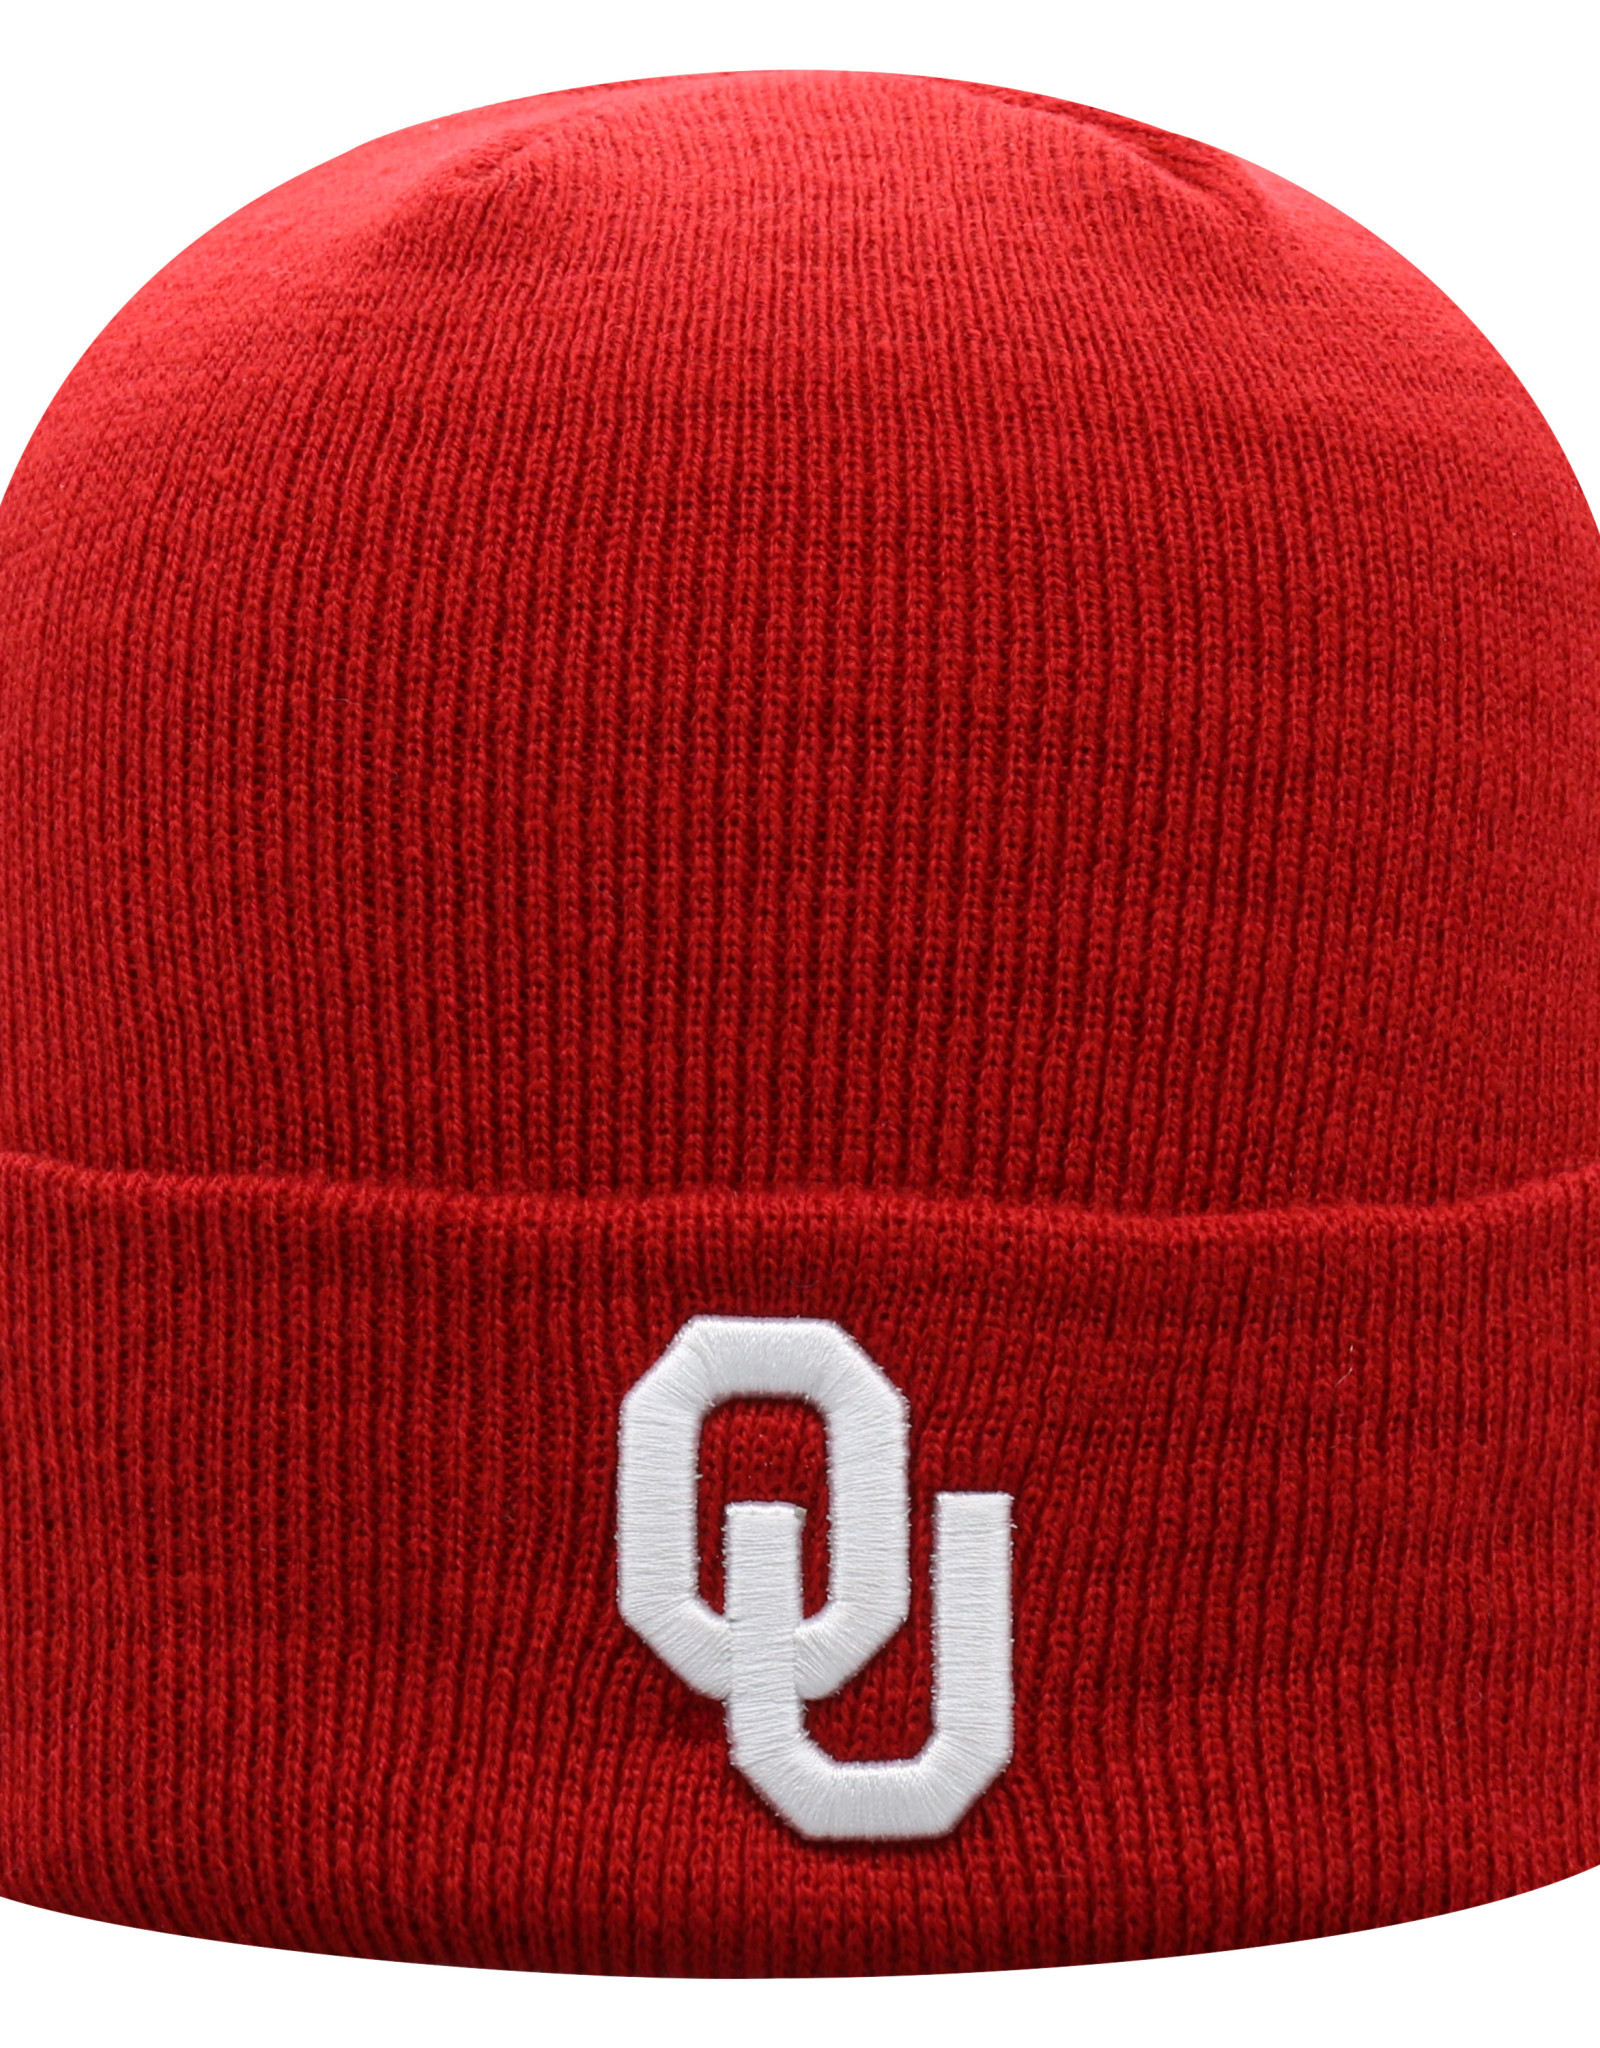 Top of the World TOW Youth OU Schooner Crimson Cuff Knit Beanie